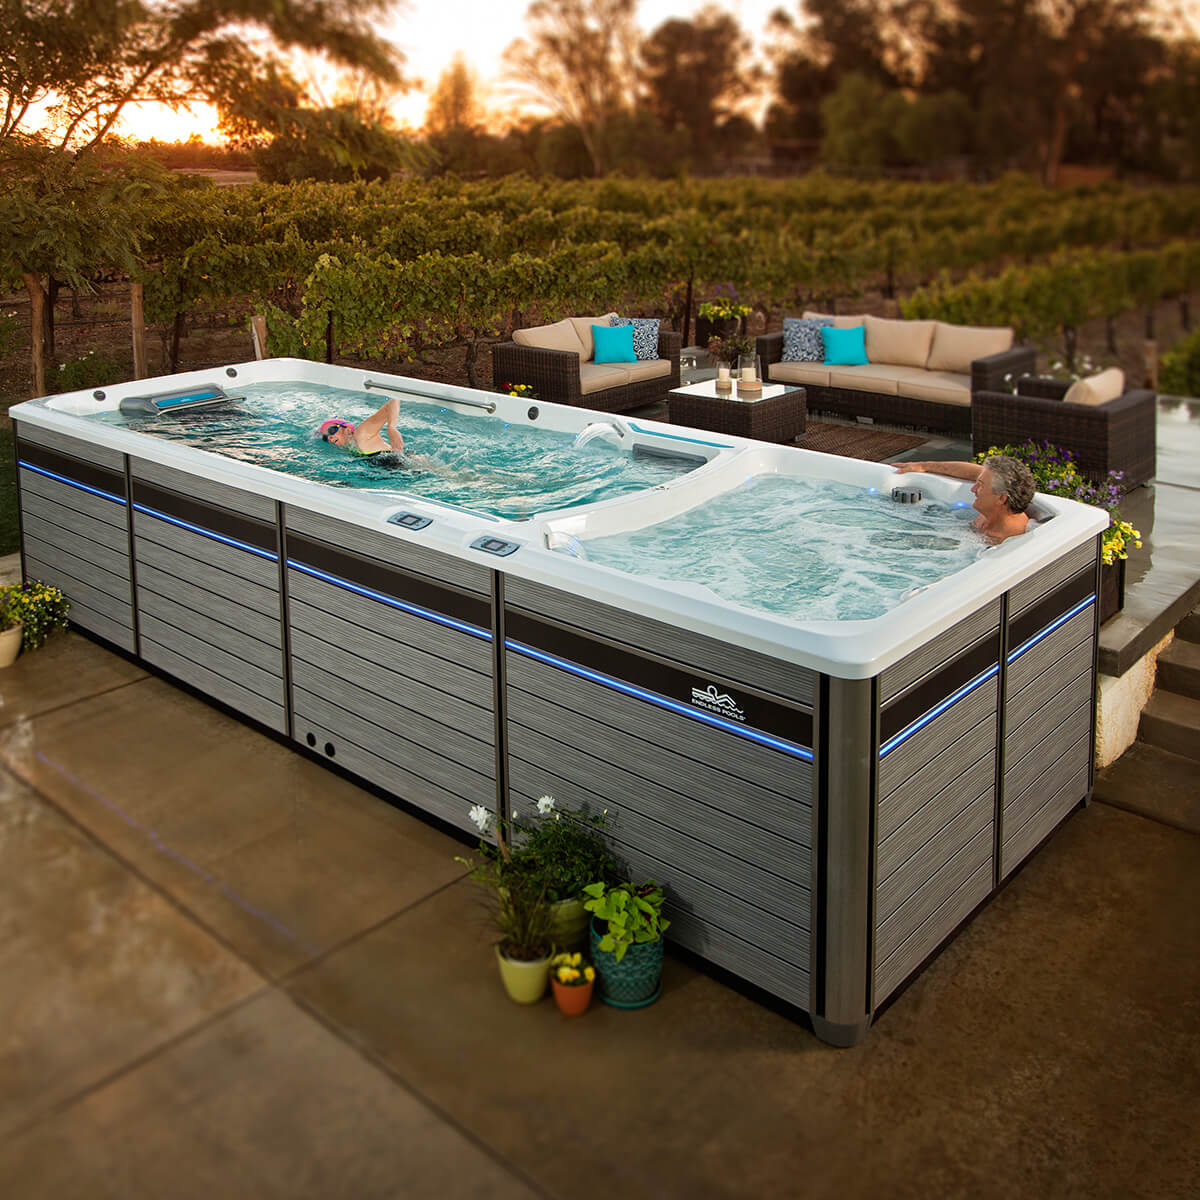 e2000 endless pools fitness systems mountain hot tub. Black Bedroom Furniture Sets. Home Design Ideas